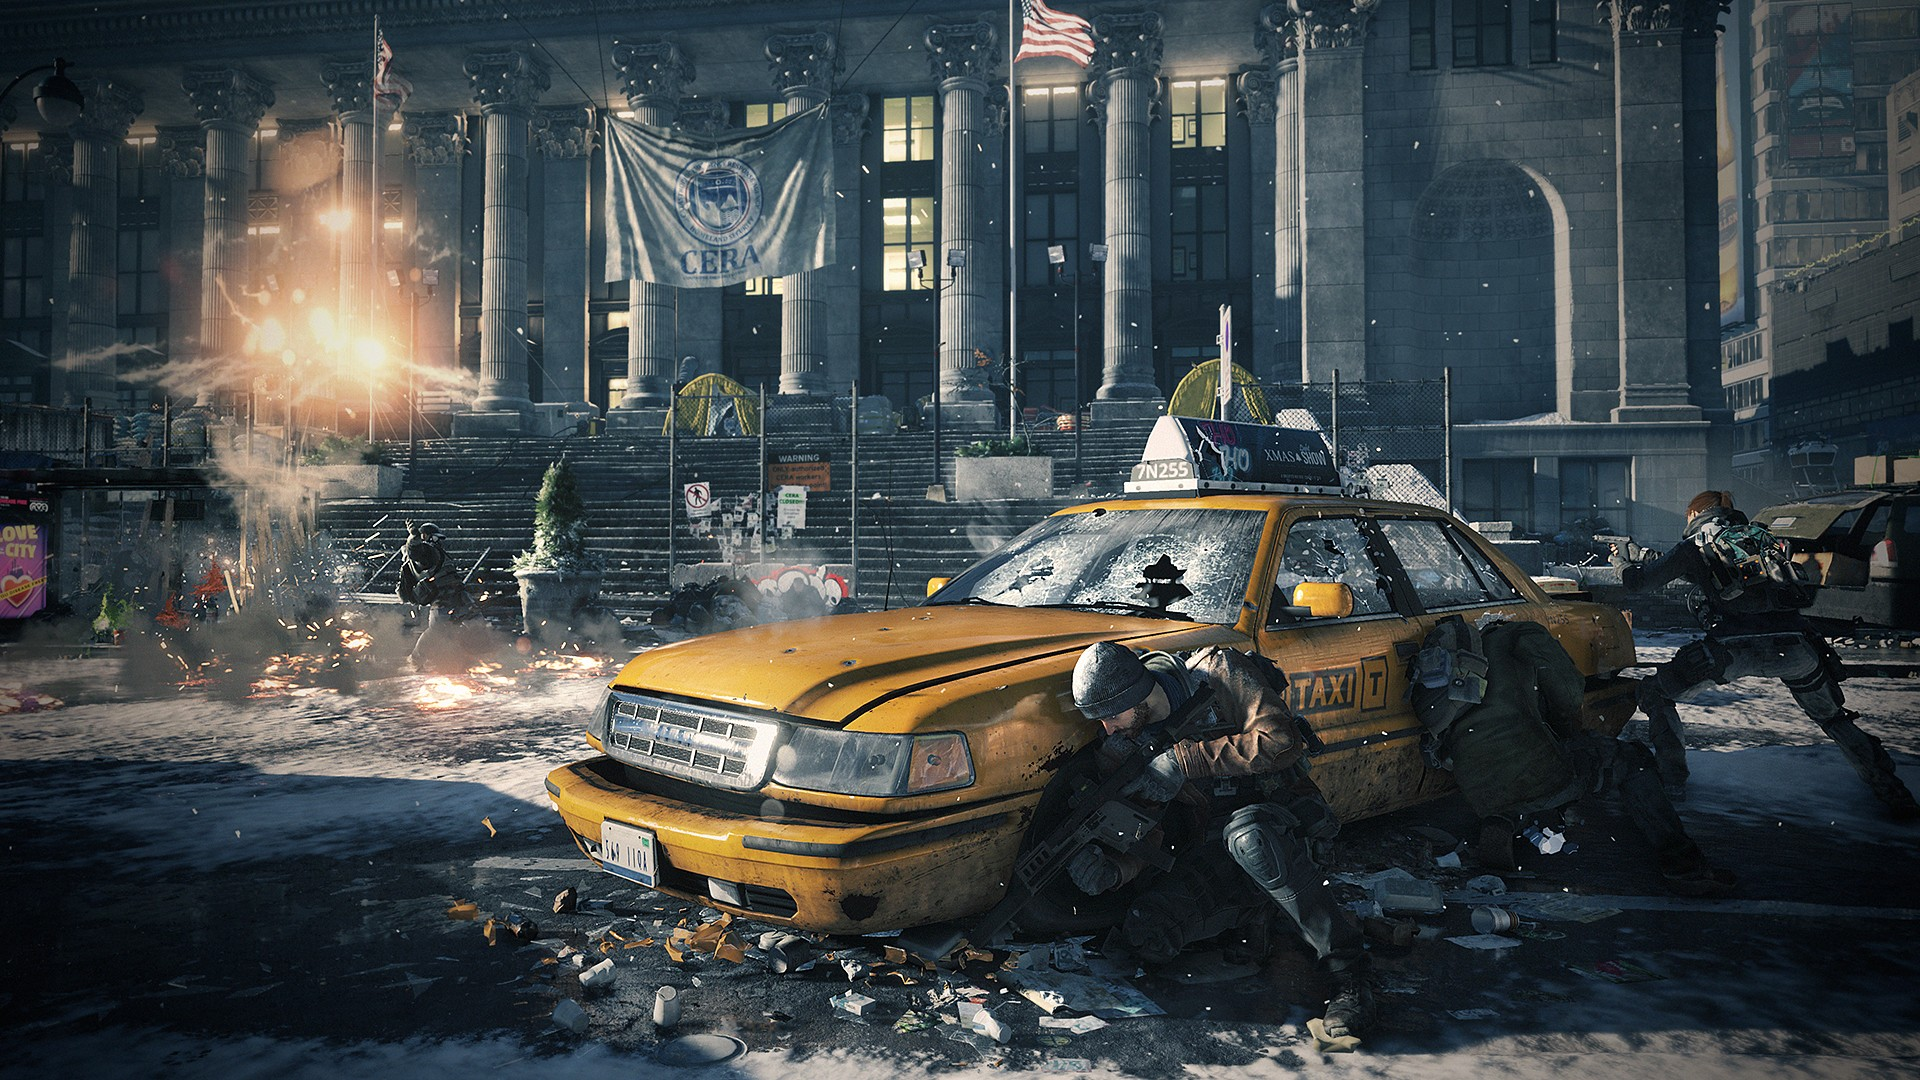 Could the Post-Pandemic Chaos of 'The Division' Really Happen?